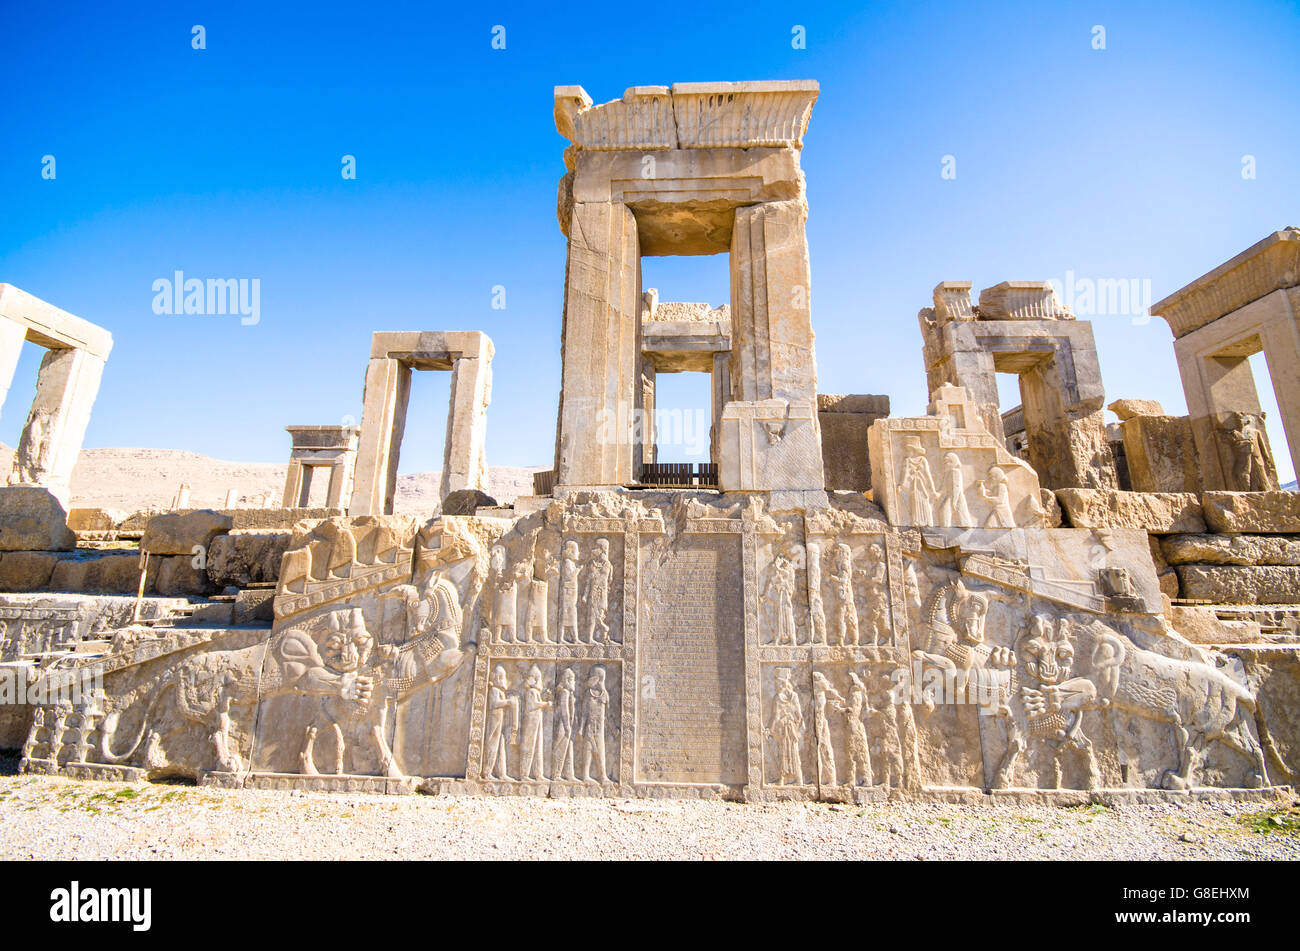 Persepolis The Ancient Capital Of The Persian Empire Stock Photo Alamy